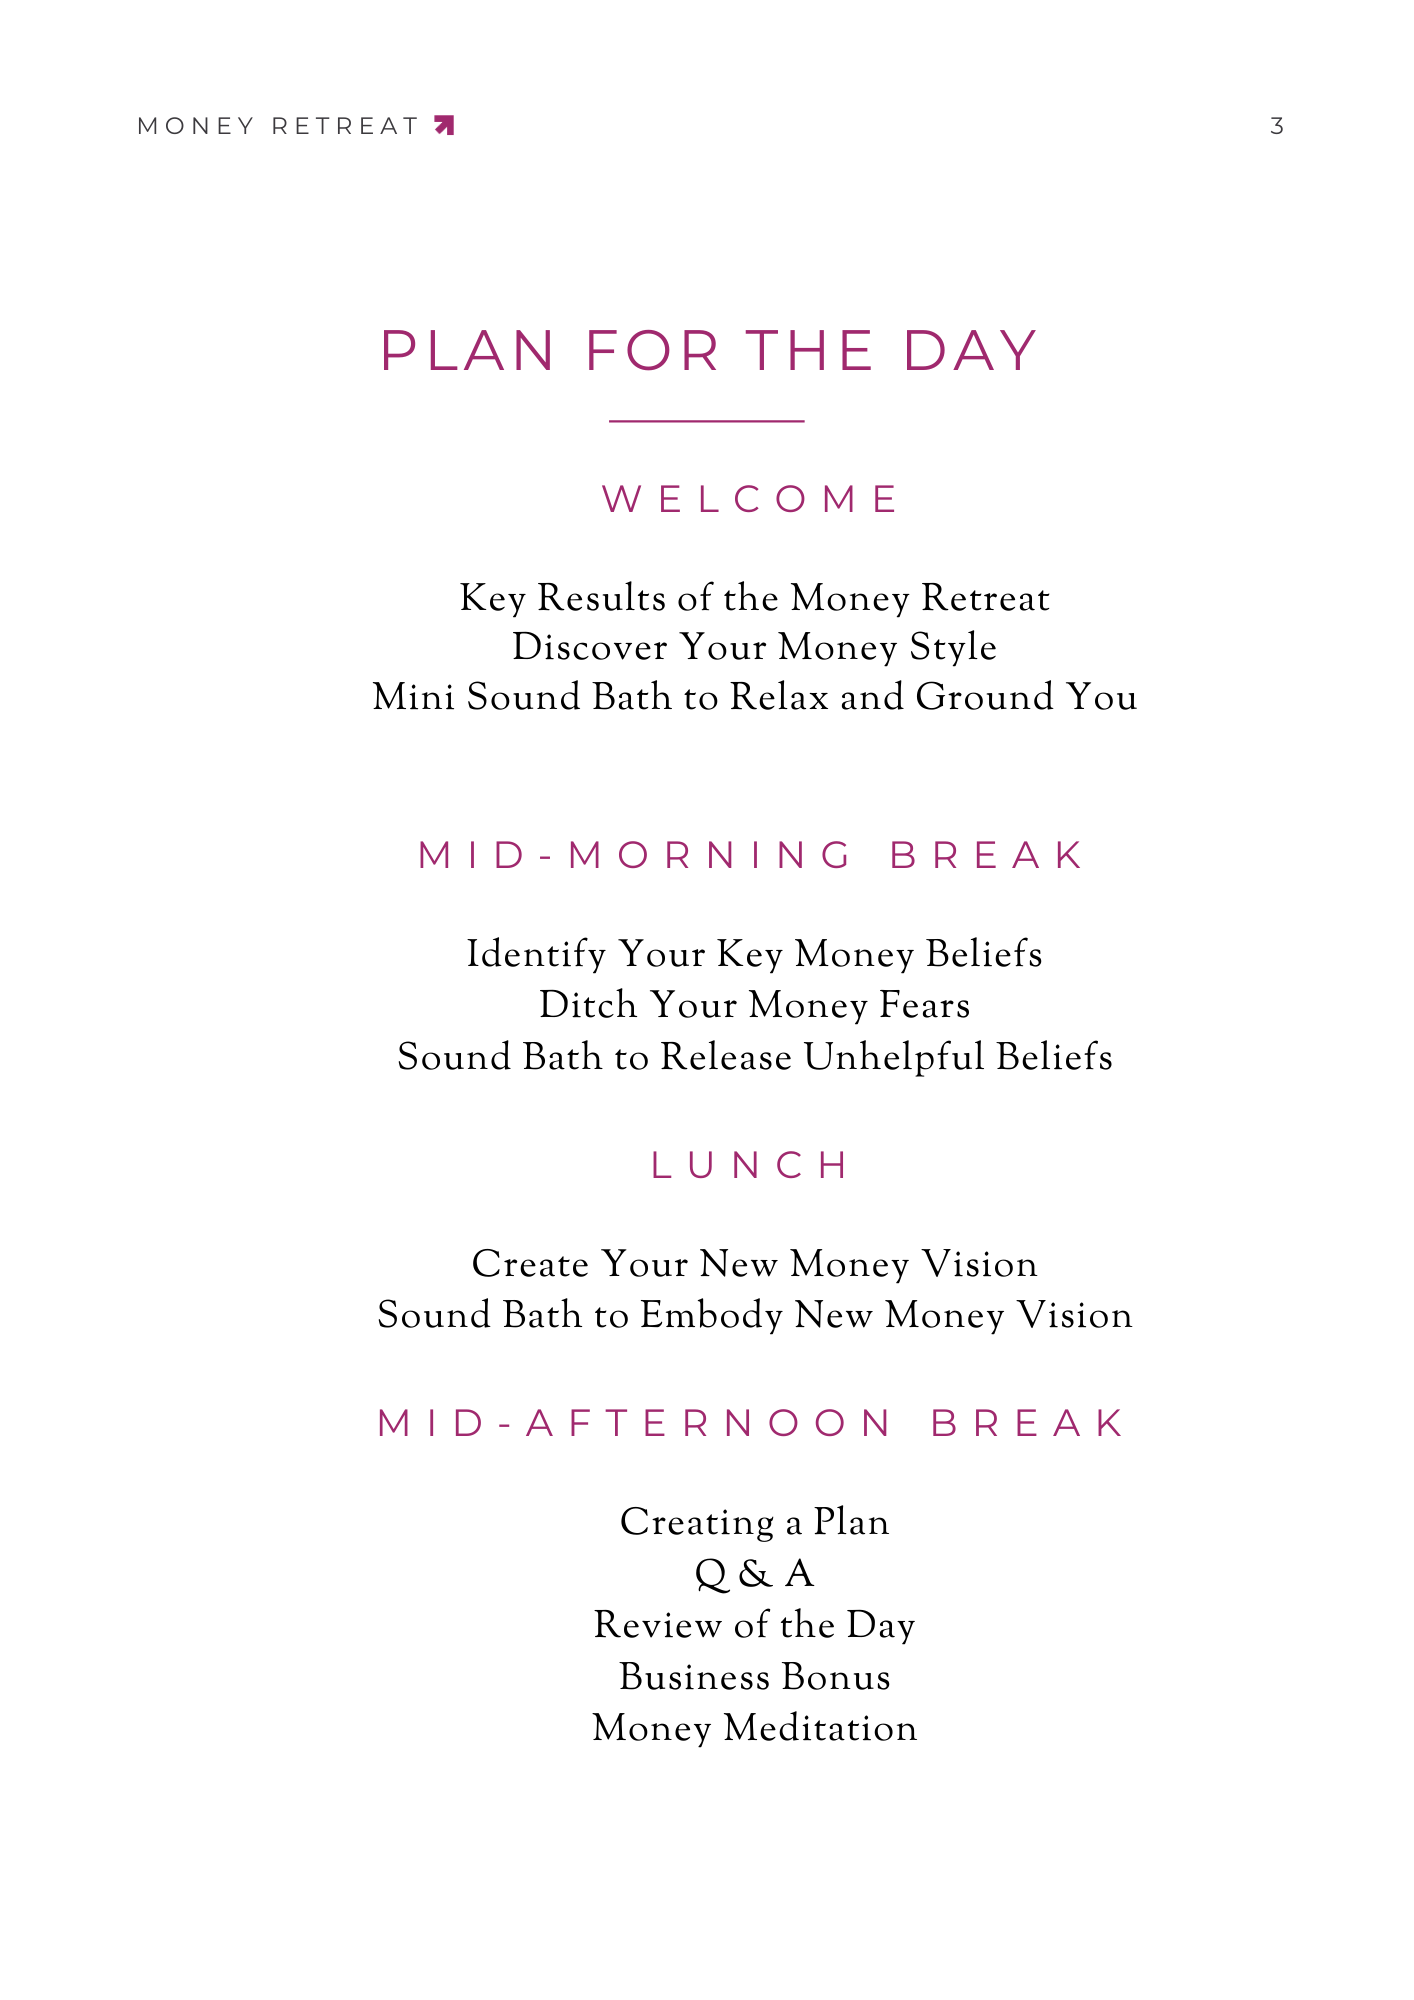 Money Retreat Agenda or Plan for the Day